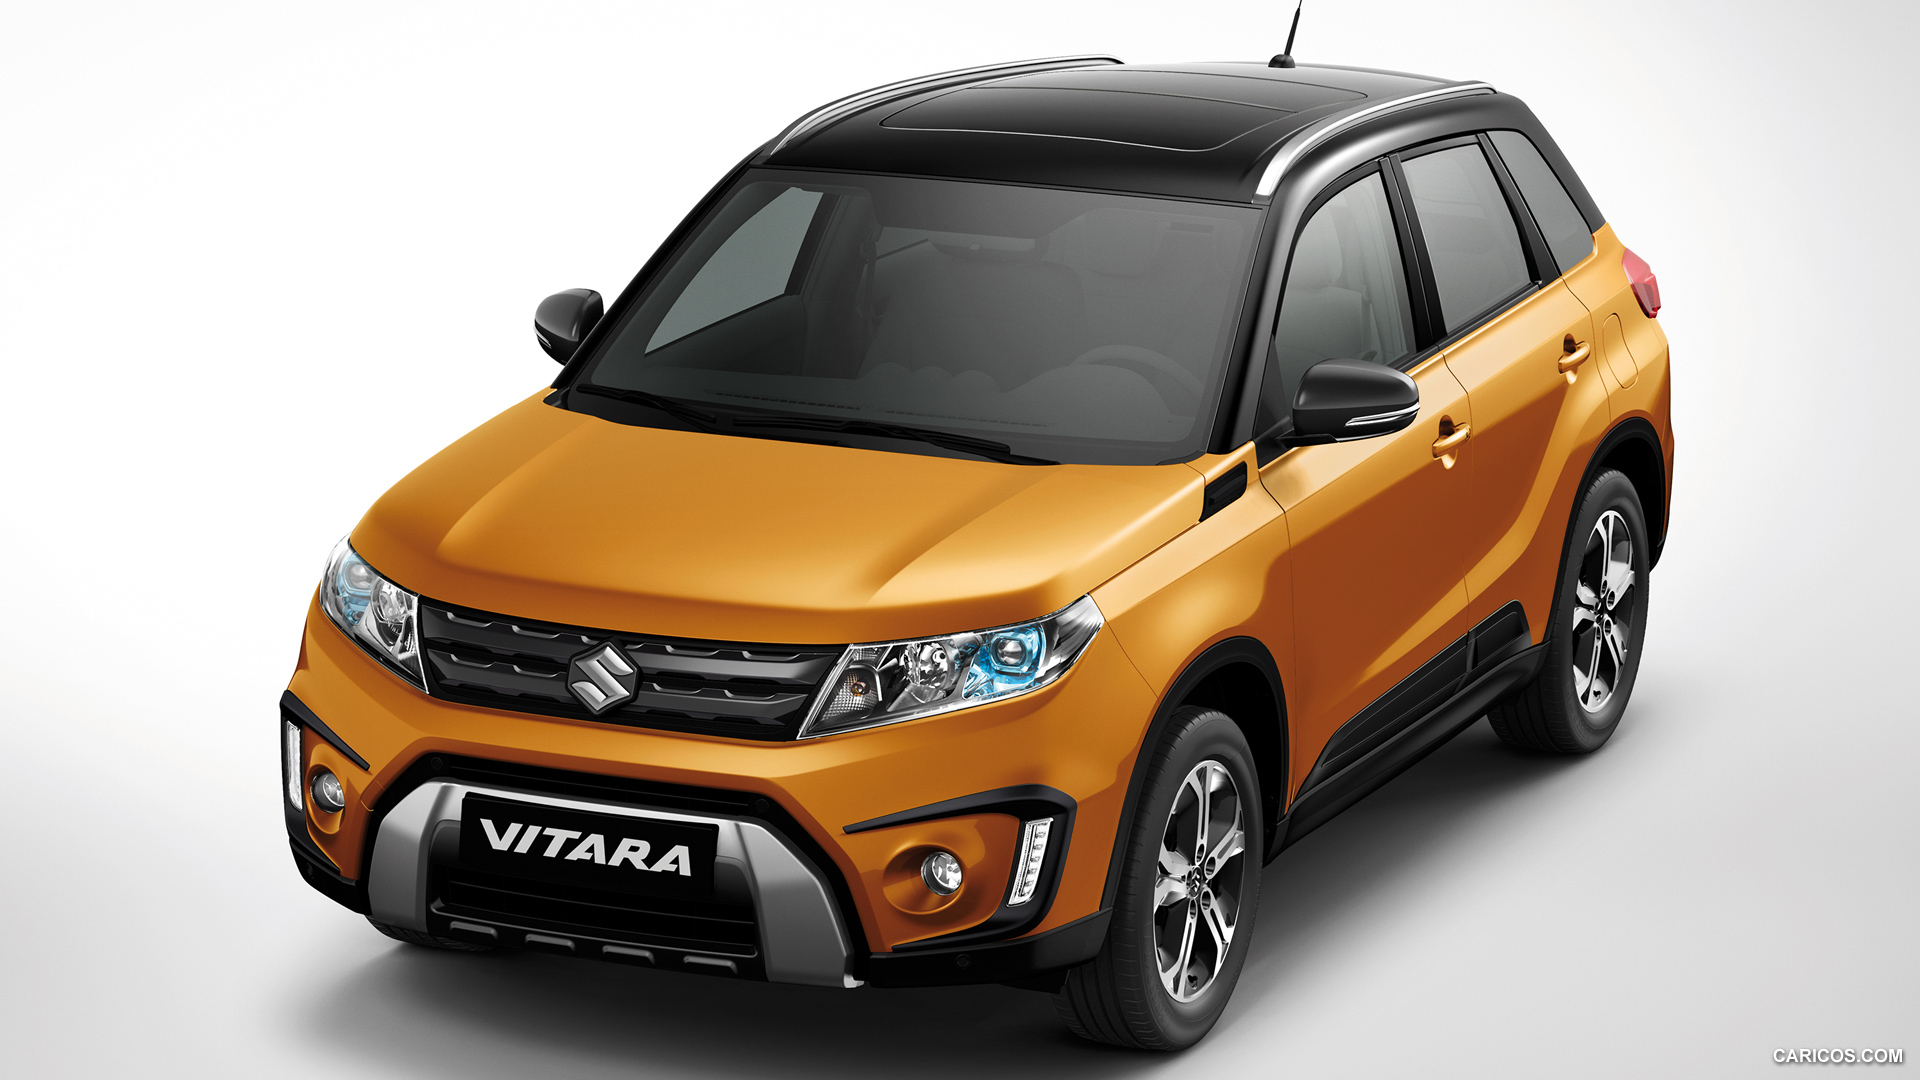 Suzuki Vitara photo 130354